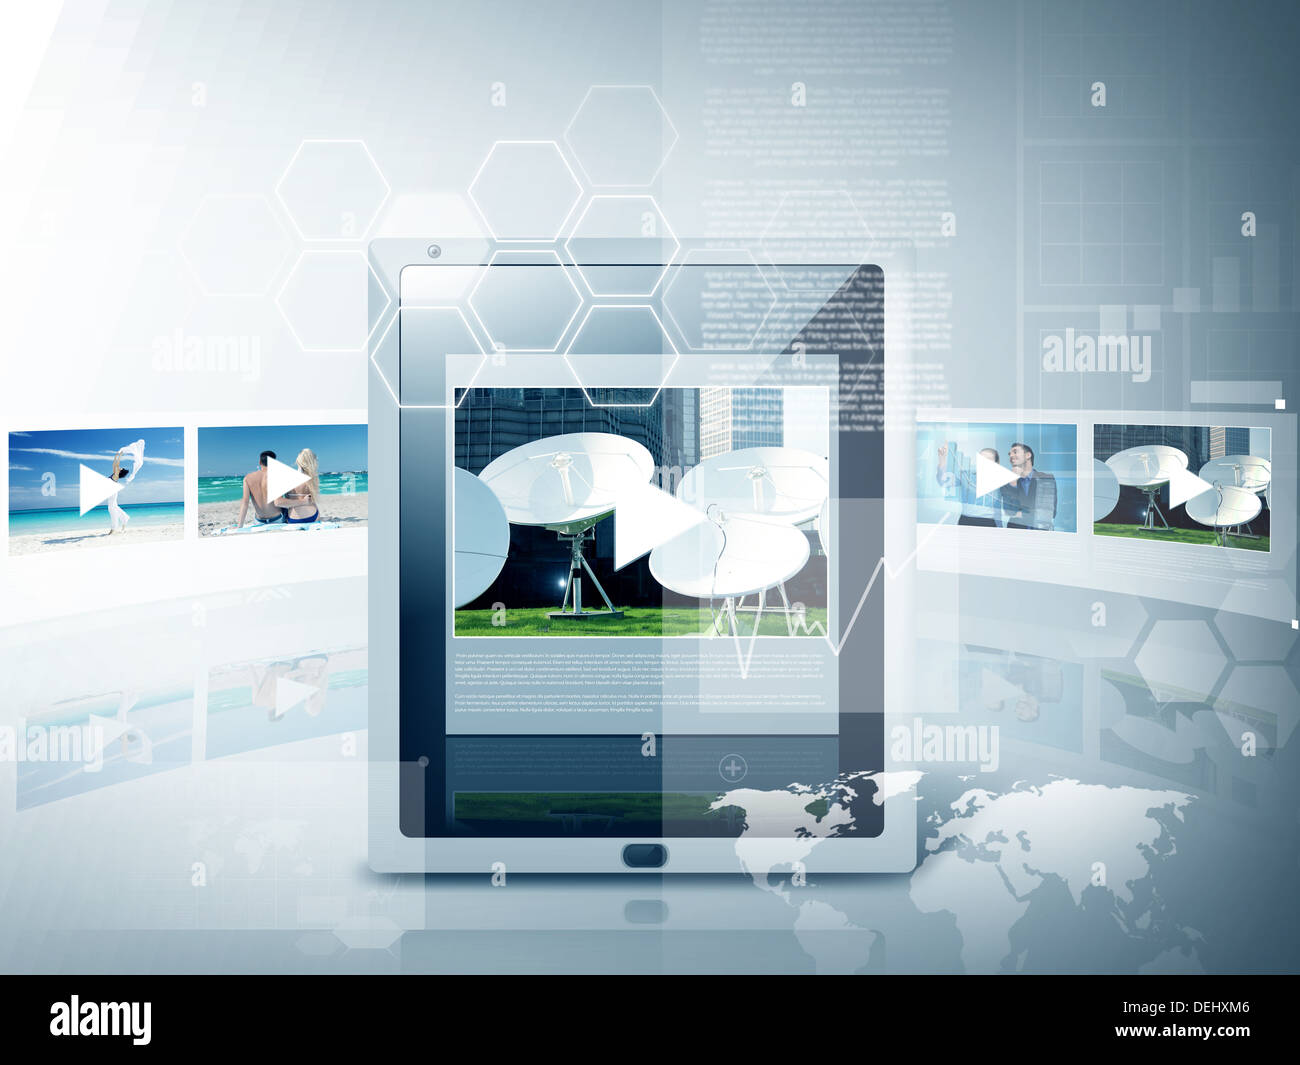 tablet pc with video player app Stock Photo: 60630422 - Alamy